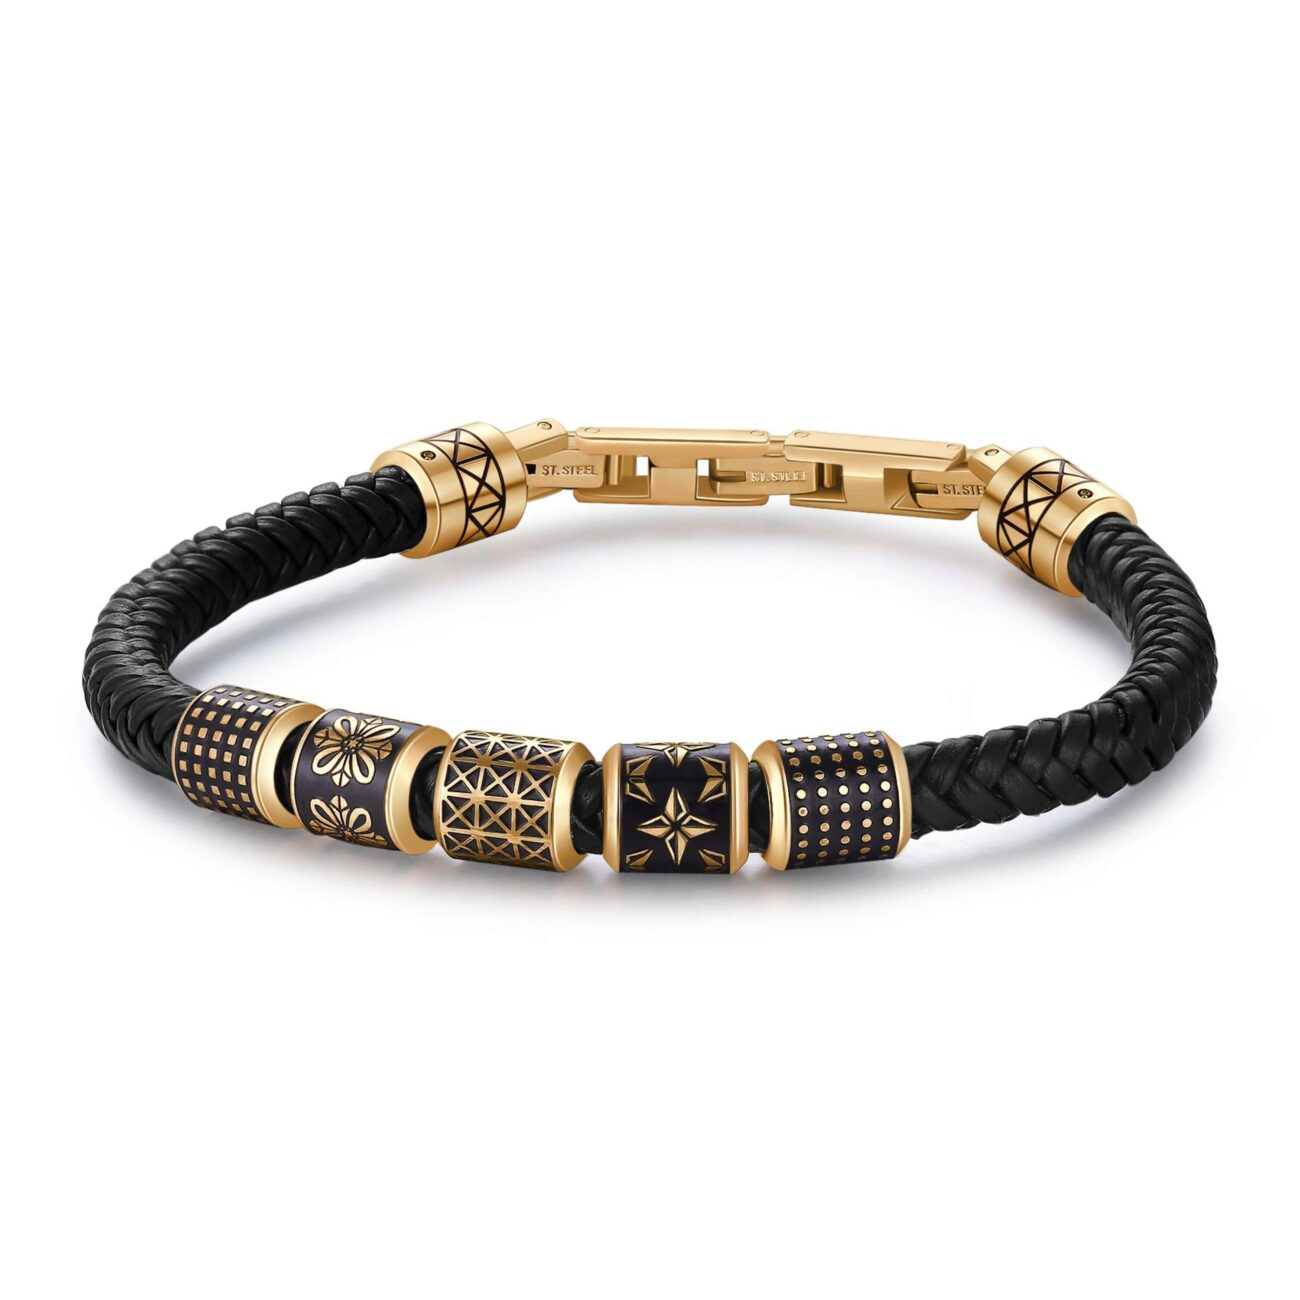 Black leather bracelet, gold pvd with 316L stainless steel and black enamel elements.